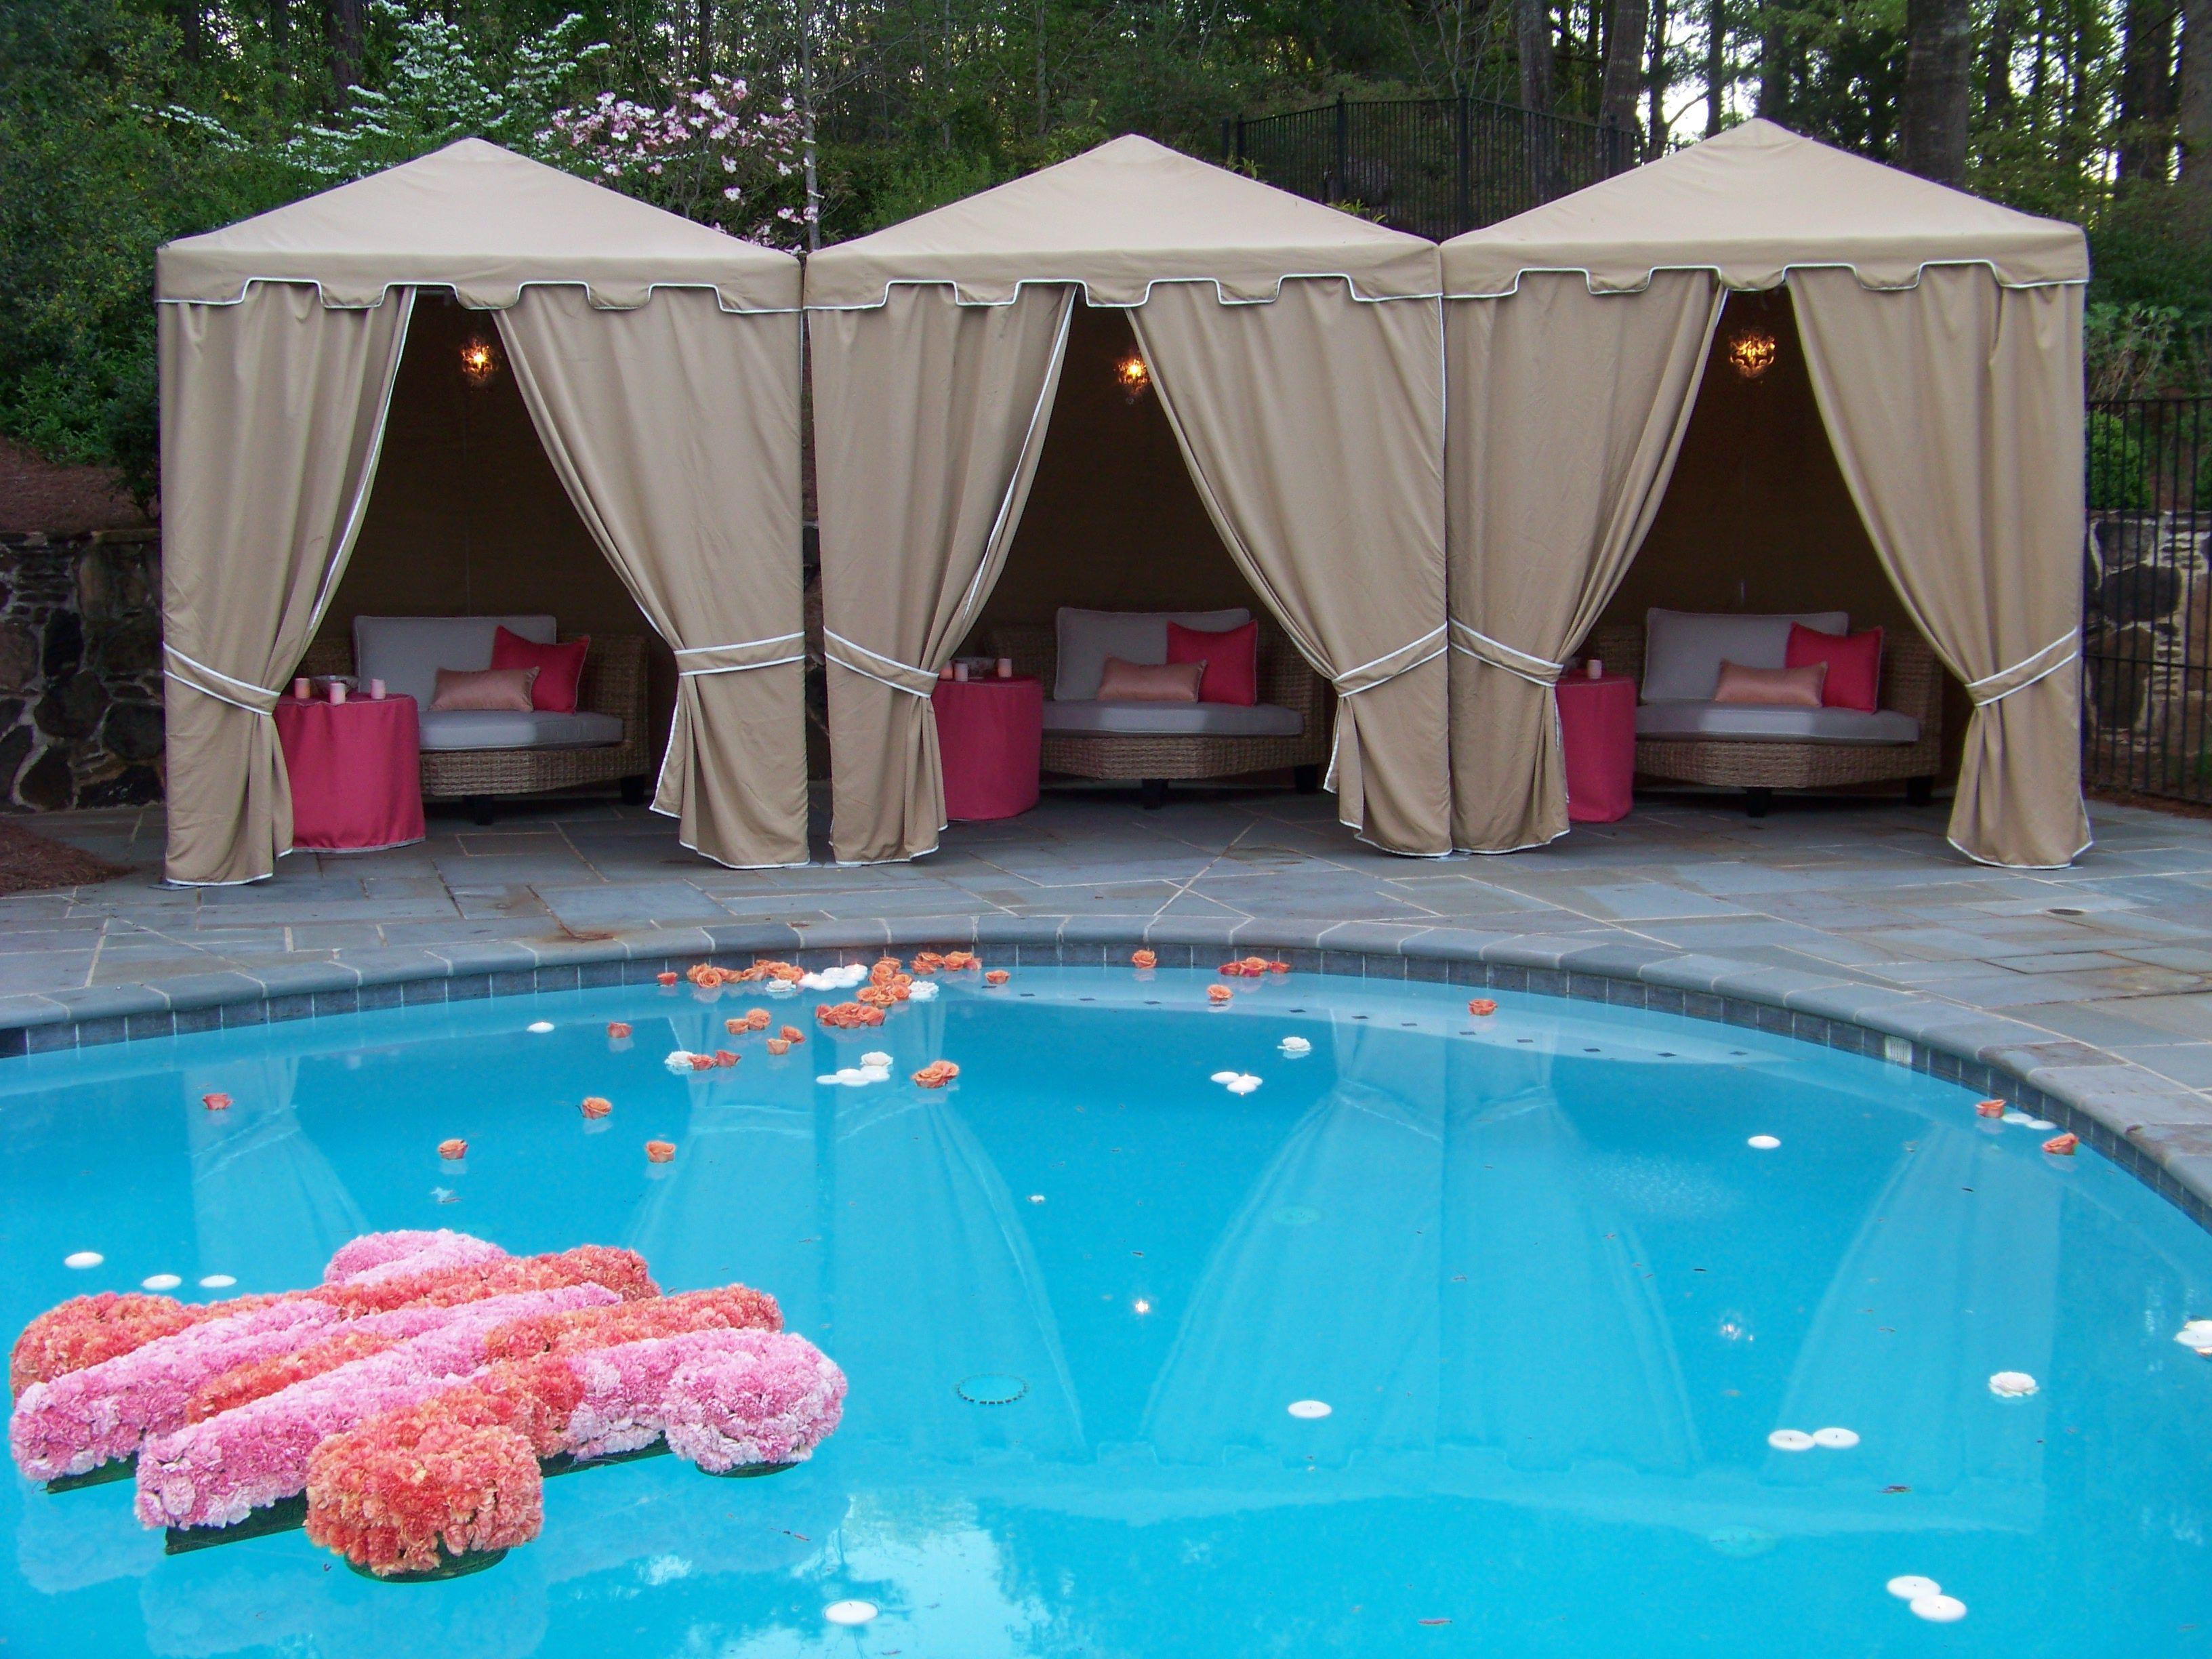 Wedding Decoration Ideas Small Pool: How To Decorate A Pool For Your Wedding